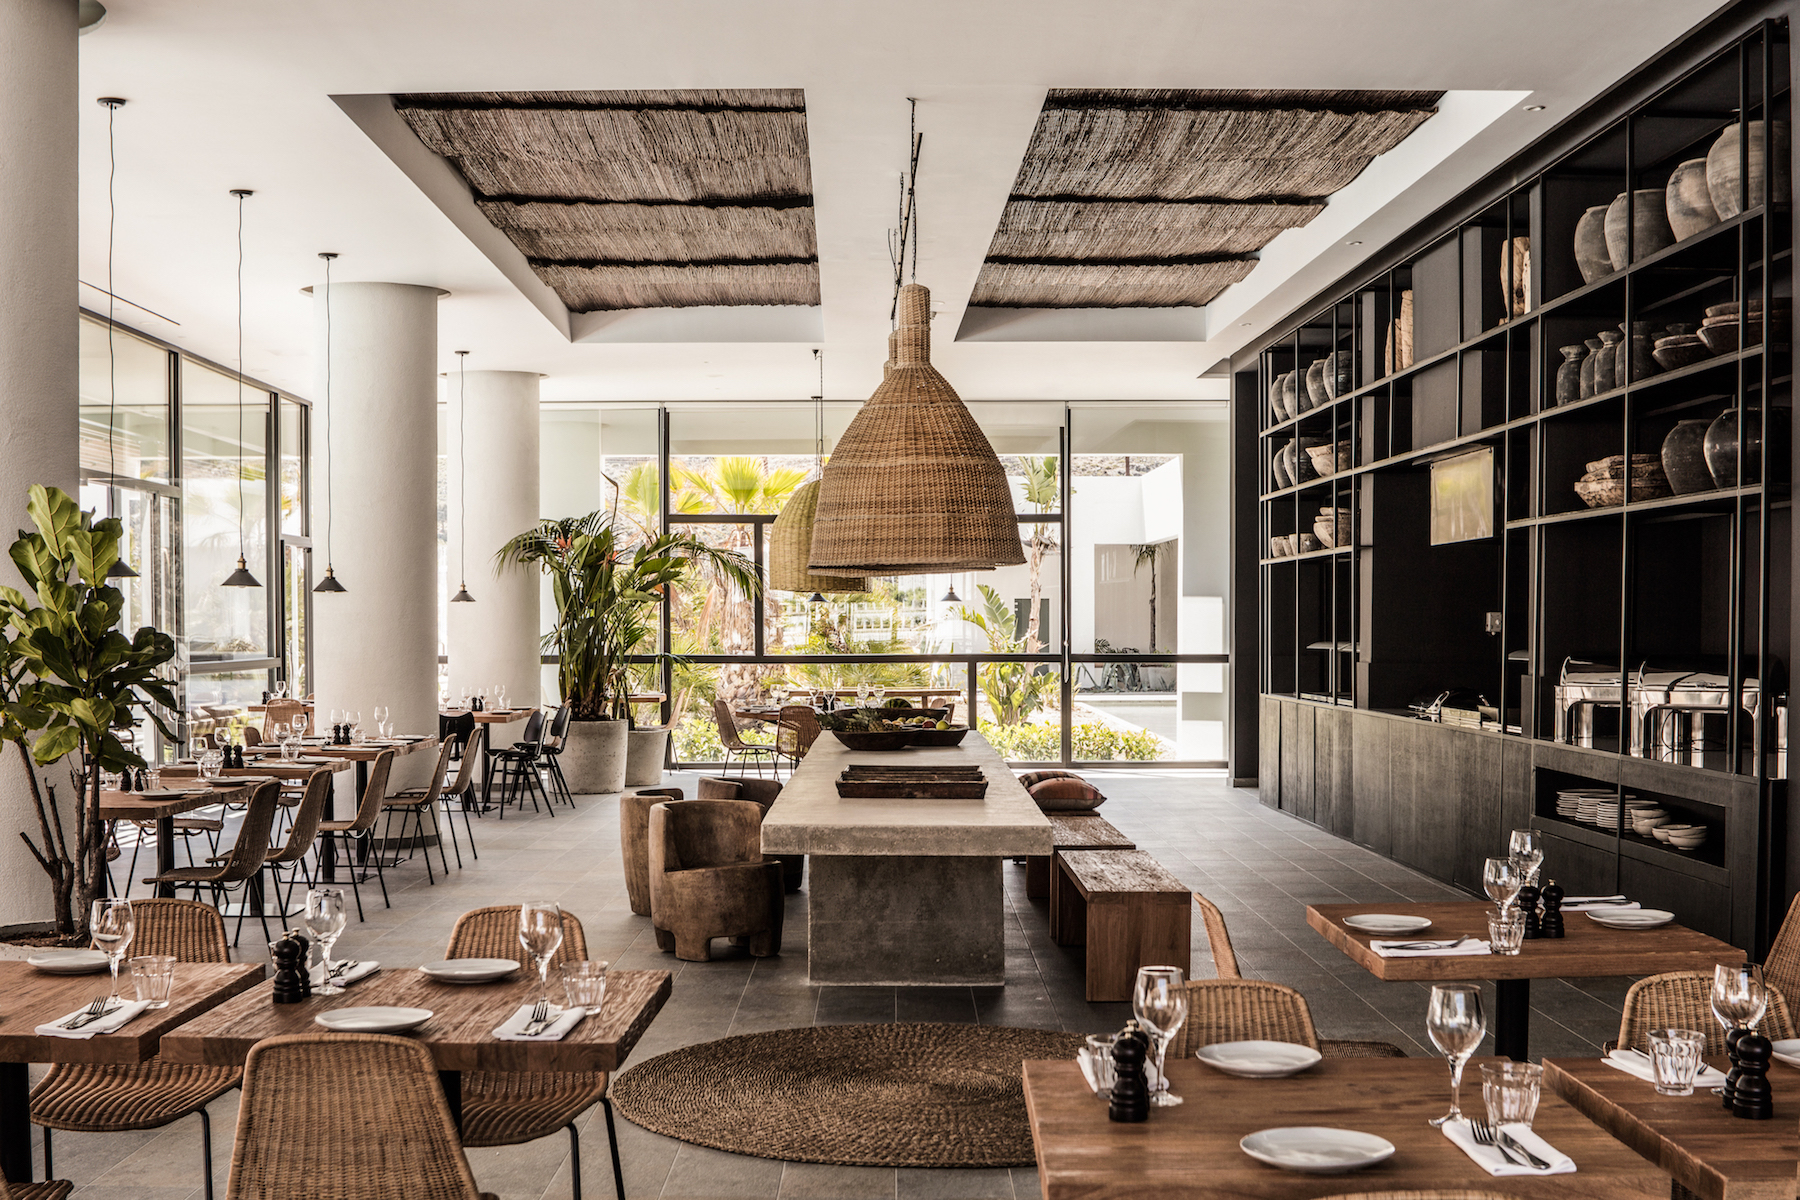 Casa Cook, the boutique hotel on the island of Rhodes, Greece designed by the very talented Annabell Kutuchu and Michael Schickinger. Basket chairs by FeelGood Designs throughout the hotel and restaurant. Photo Georg Roske